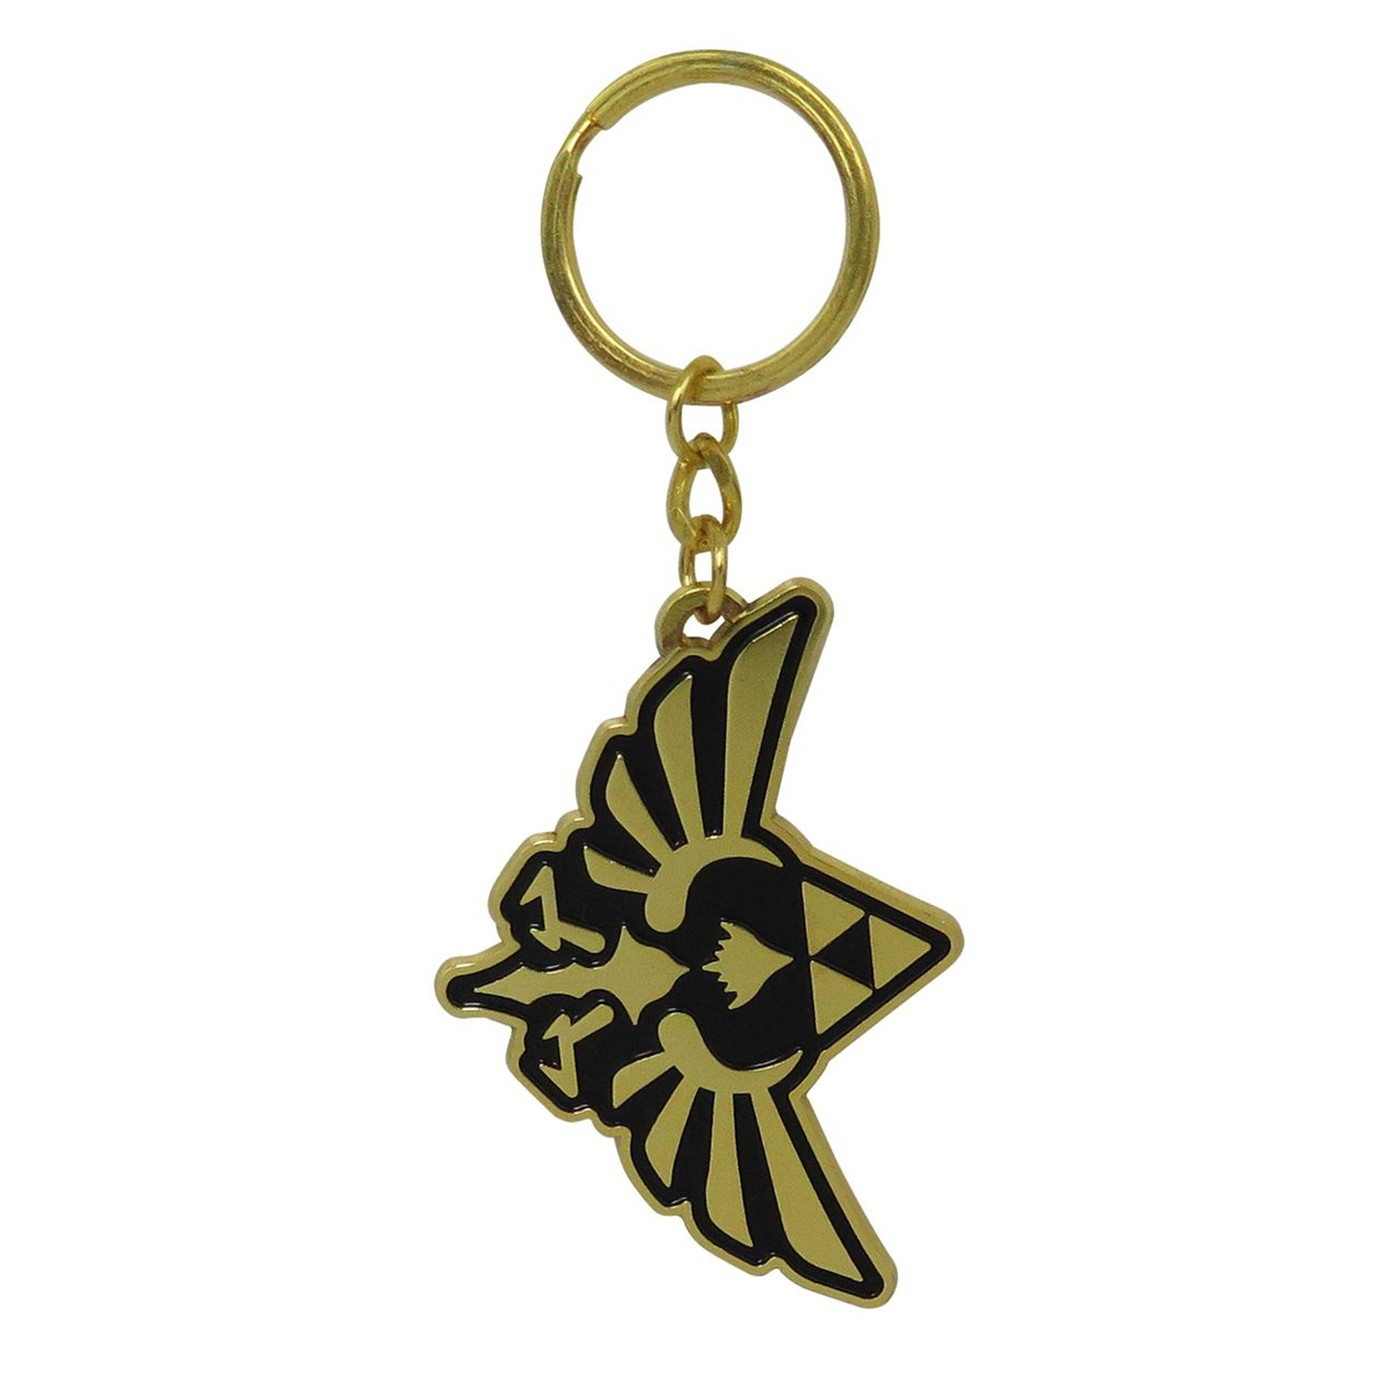 Legend of Zelda Metal Keychain